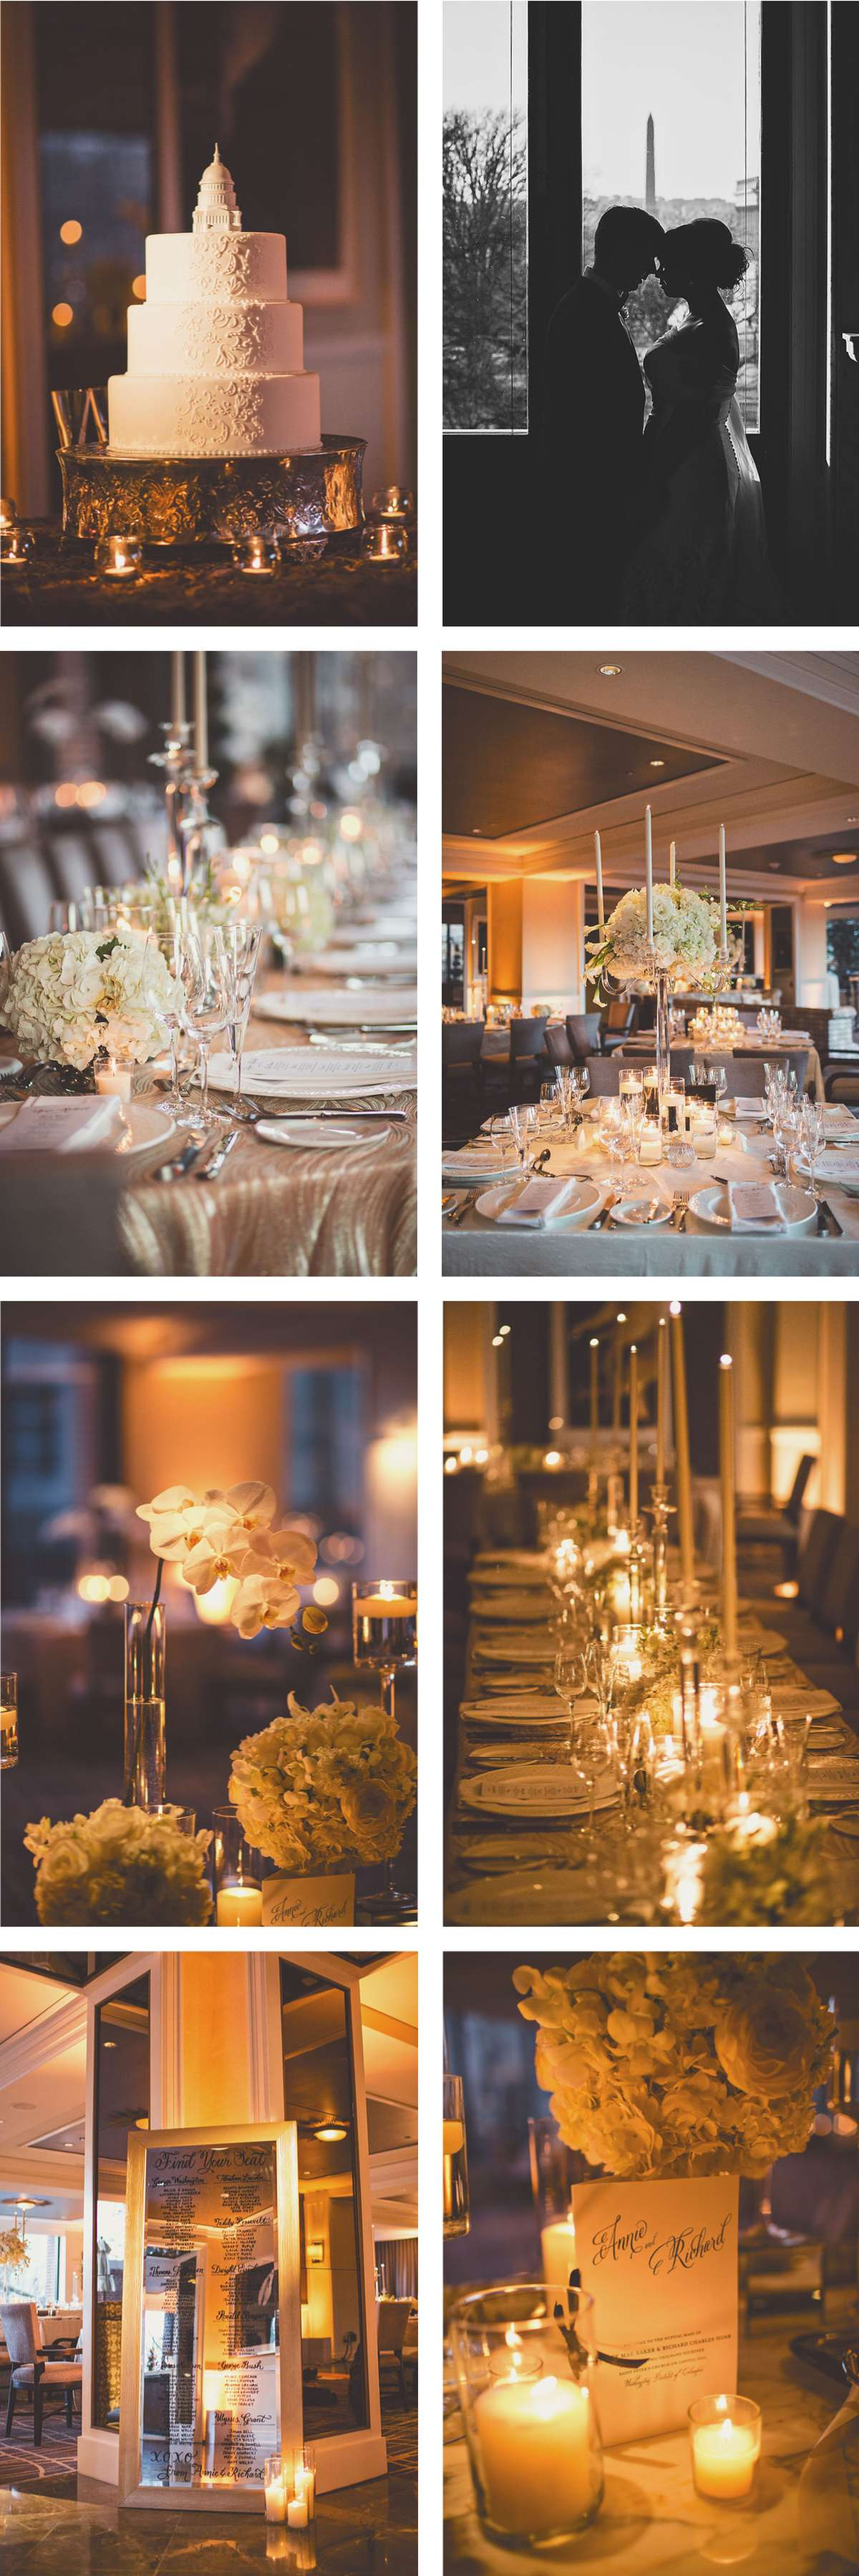 formal black and white wedding reception